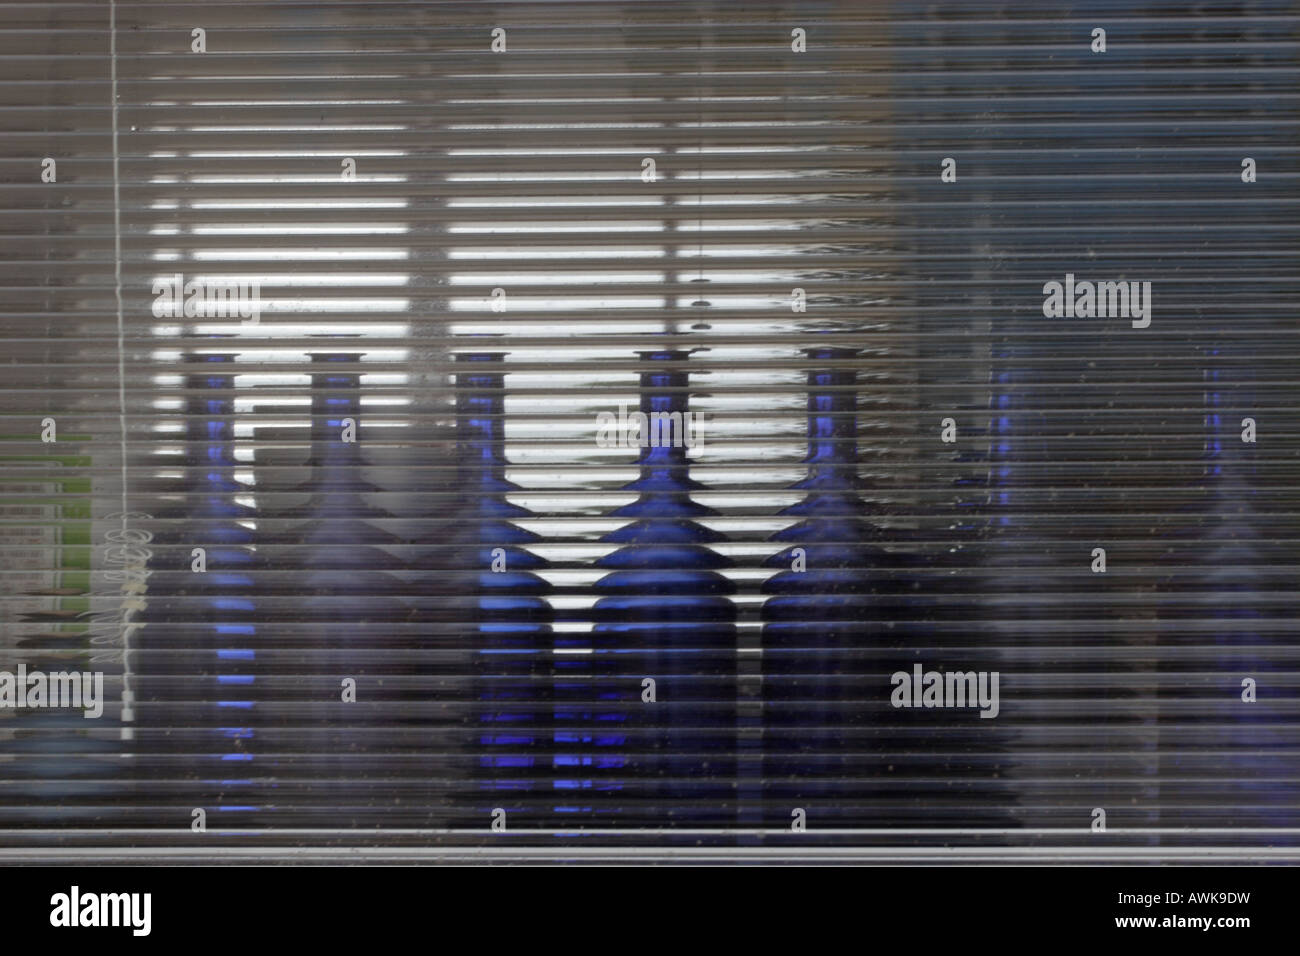 A collection of backlit blue bottles refracted in occluded window glass. - Stock Image